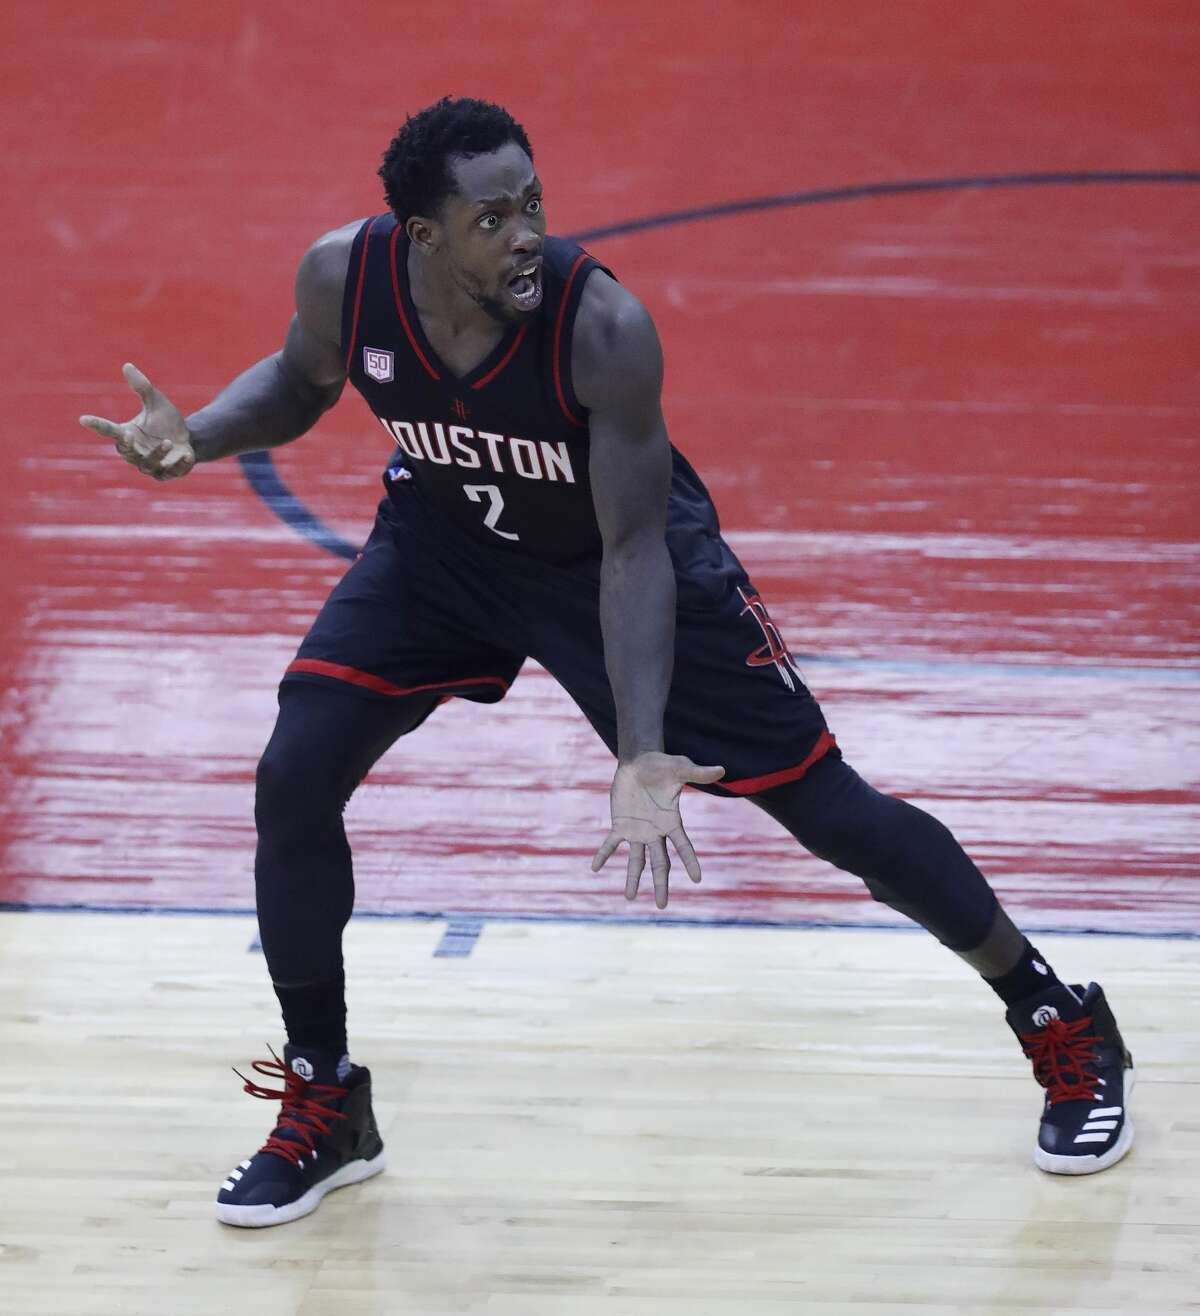 Mr. 94 Feet and The Wolverine Beverley had the coolest nicknames on the team. The Beard is good, but it doesn't beat Mr. 94 Feet and The Wolverine. And the names fit with Beverley's full-court ferociousness all over the floor.